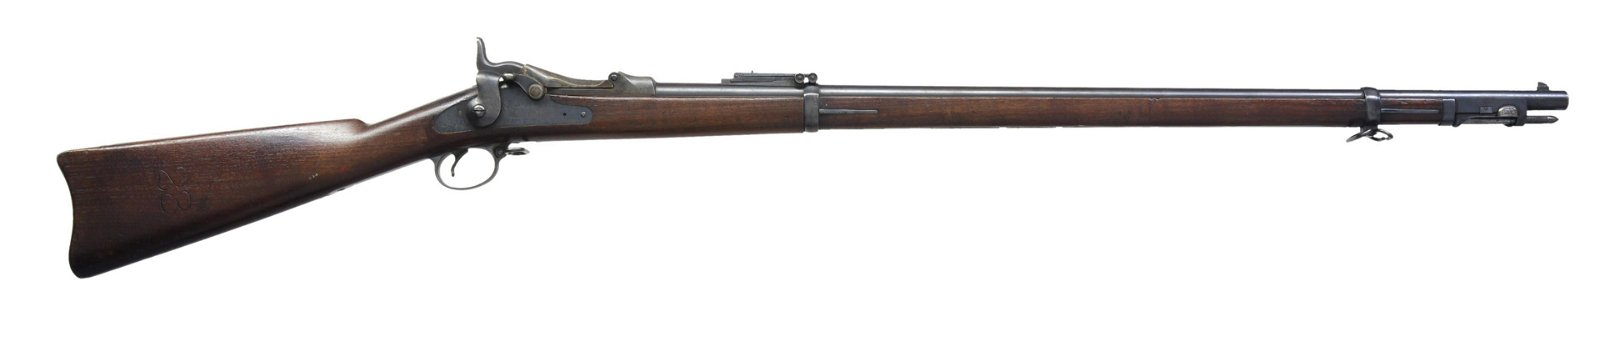 SPRINGFIELD MODEL 1888 TRAPDOOR RIFLE.